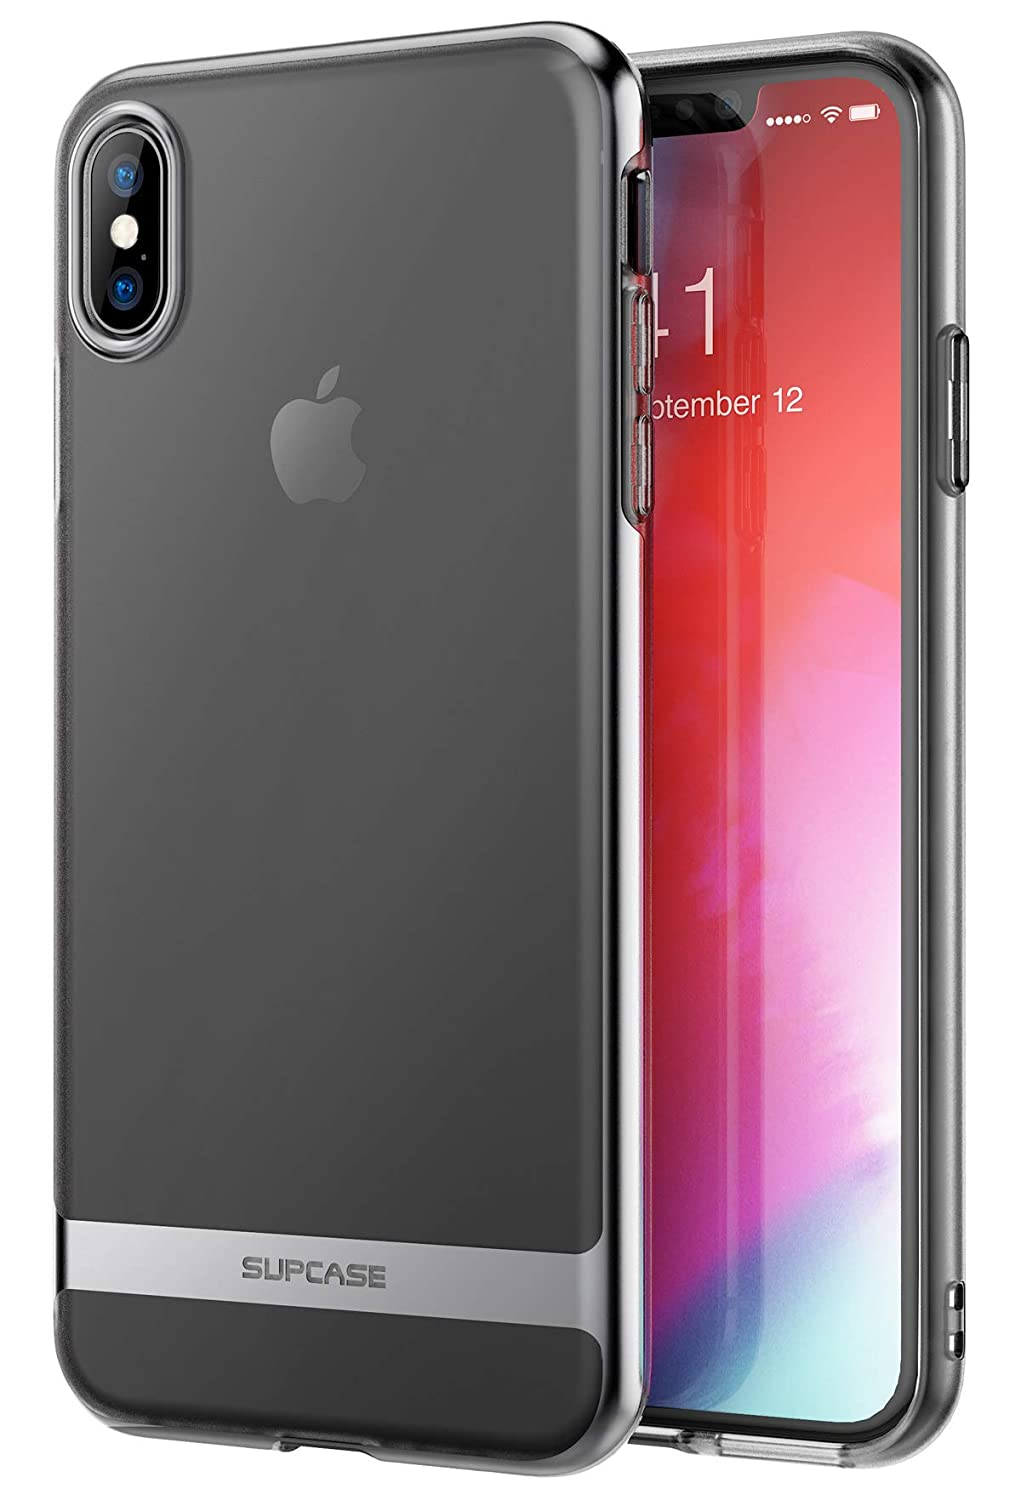 SUPCASE Unicorn Beetle Metro Series Slim Soft TPU Clear Cover Case for Apple iPhone X 2017/ iPhone Xs 2018 (Black)